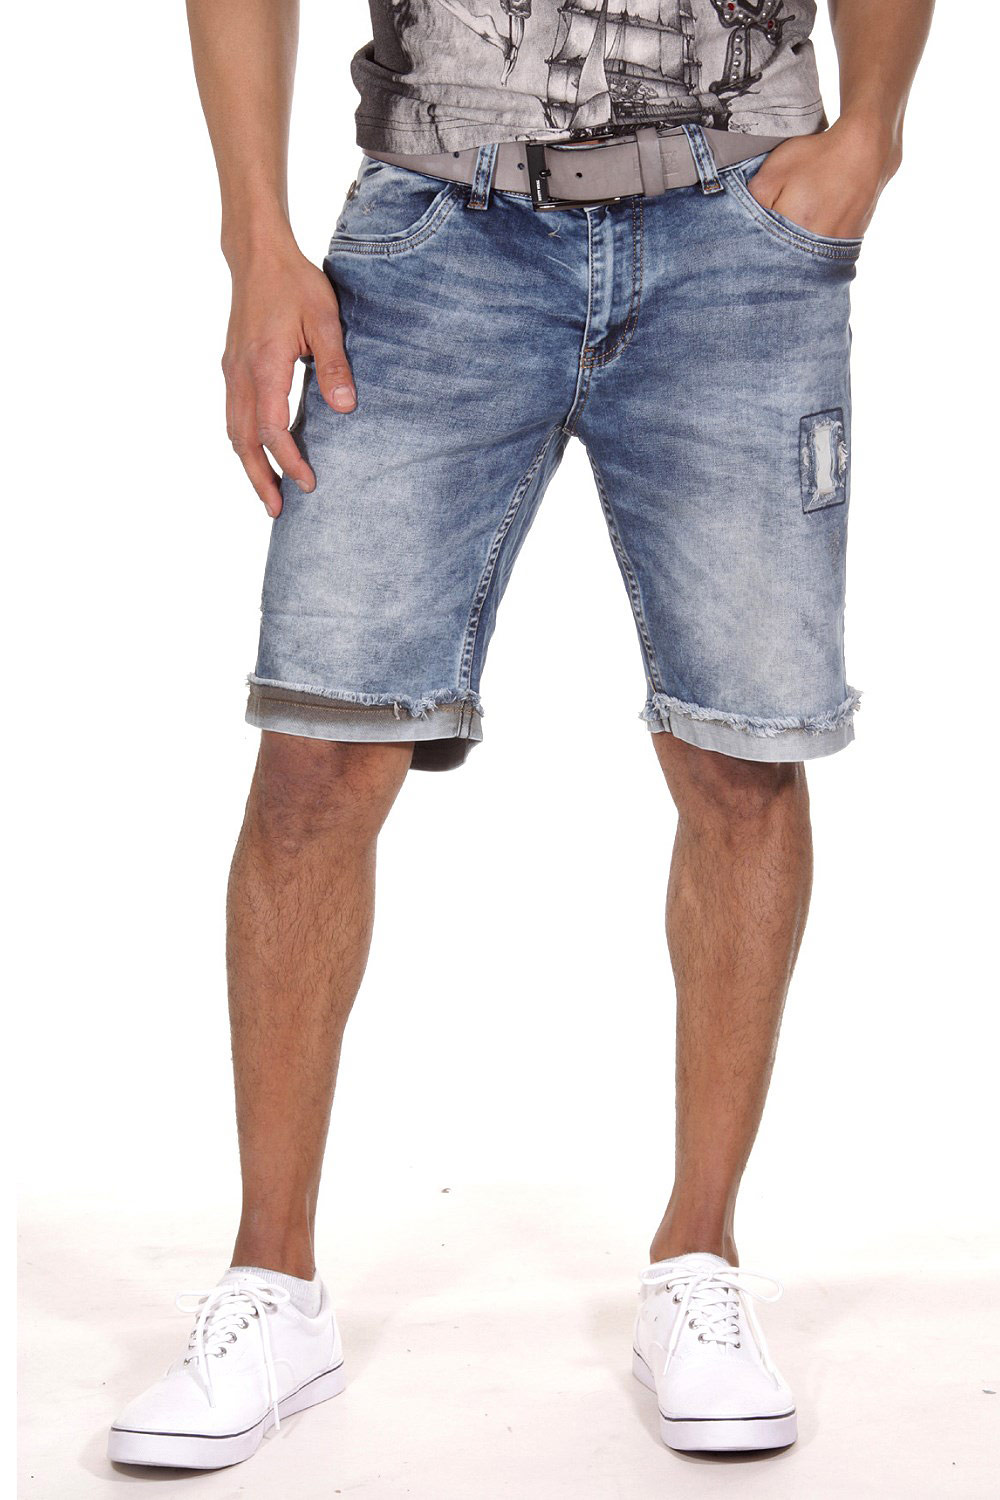 CATCH Stretch-Shorts auf oboy.de